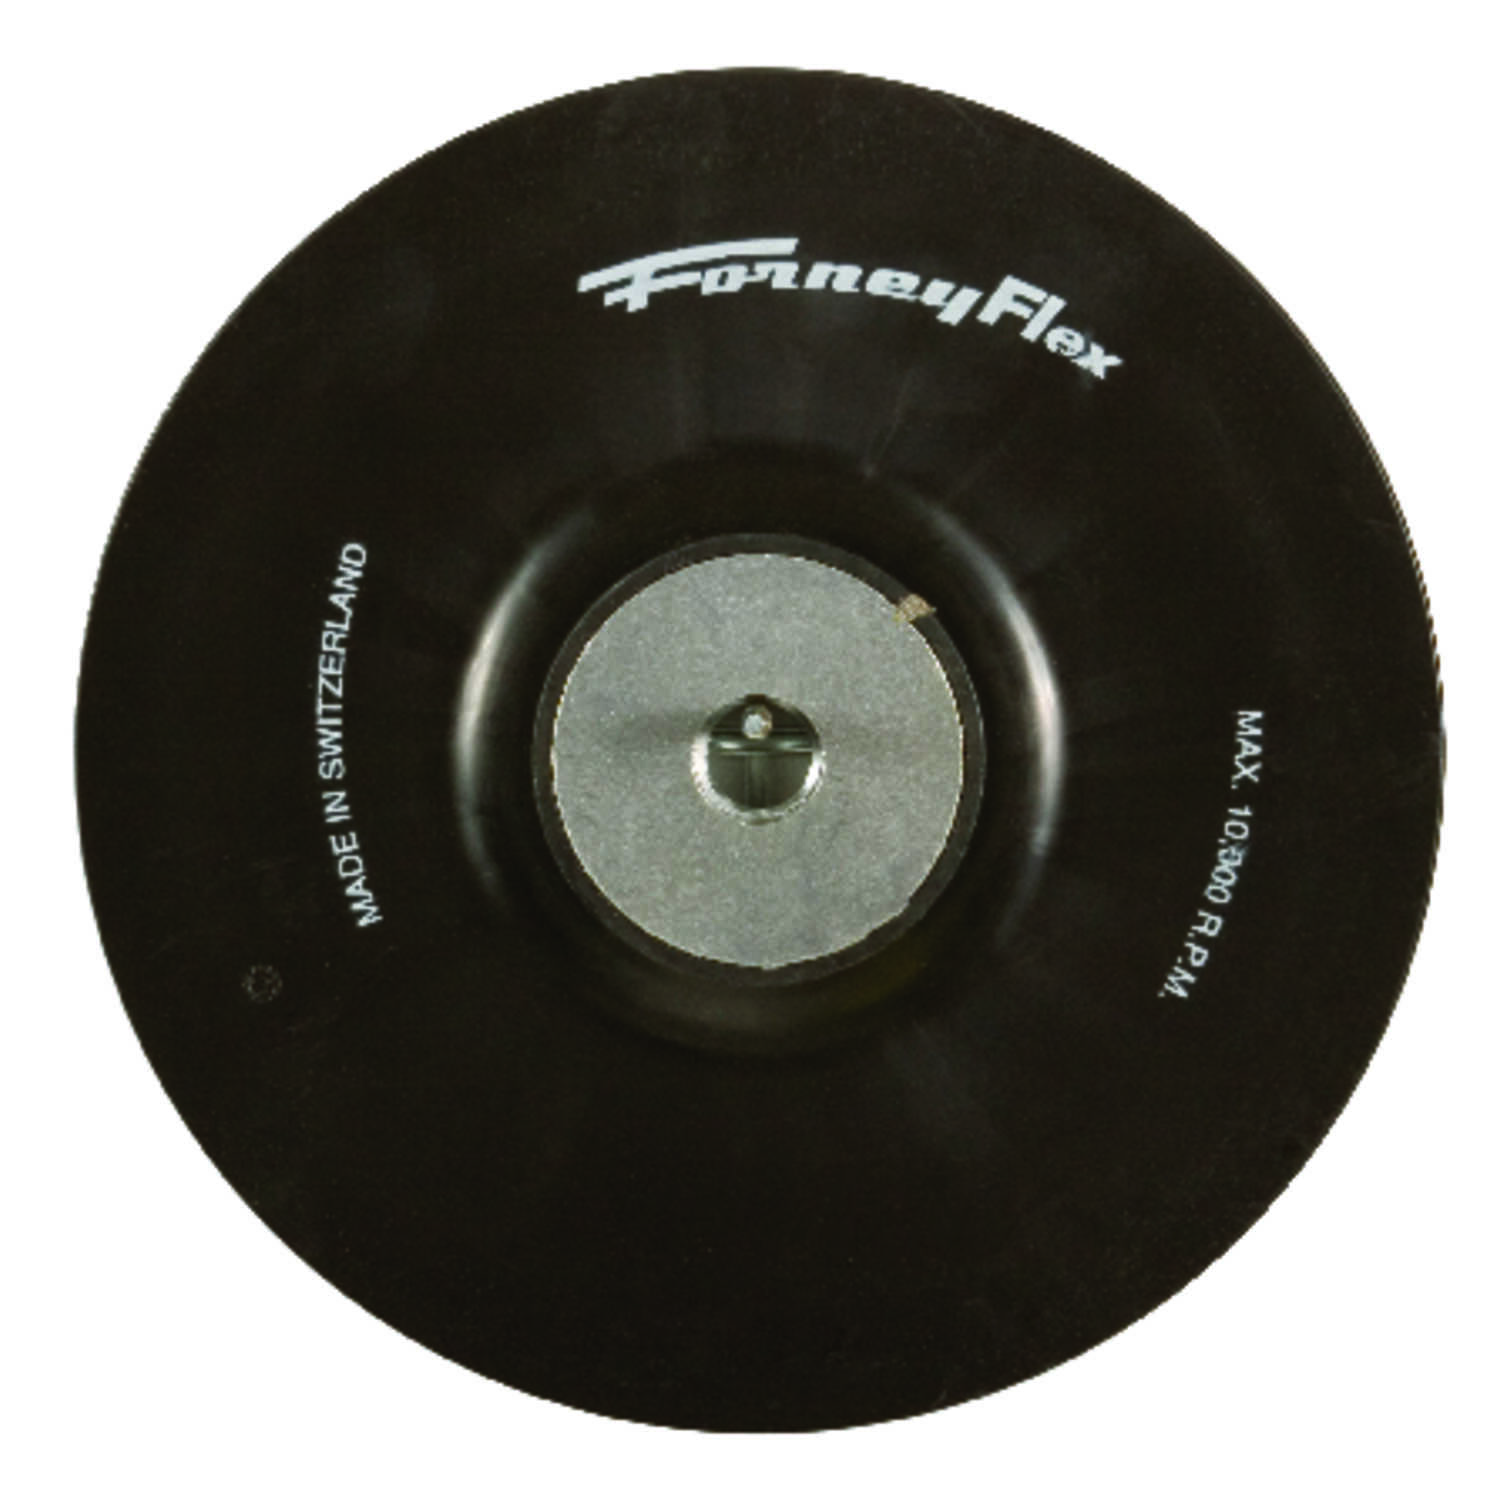 Forney  7 in. Dia. x 5/8 in.   Rubber  Backing Pad  10000 rpm 1 pc.